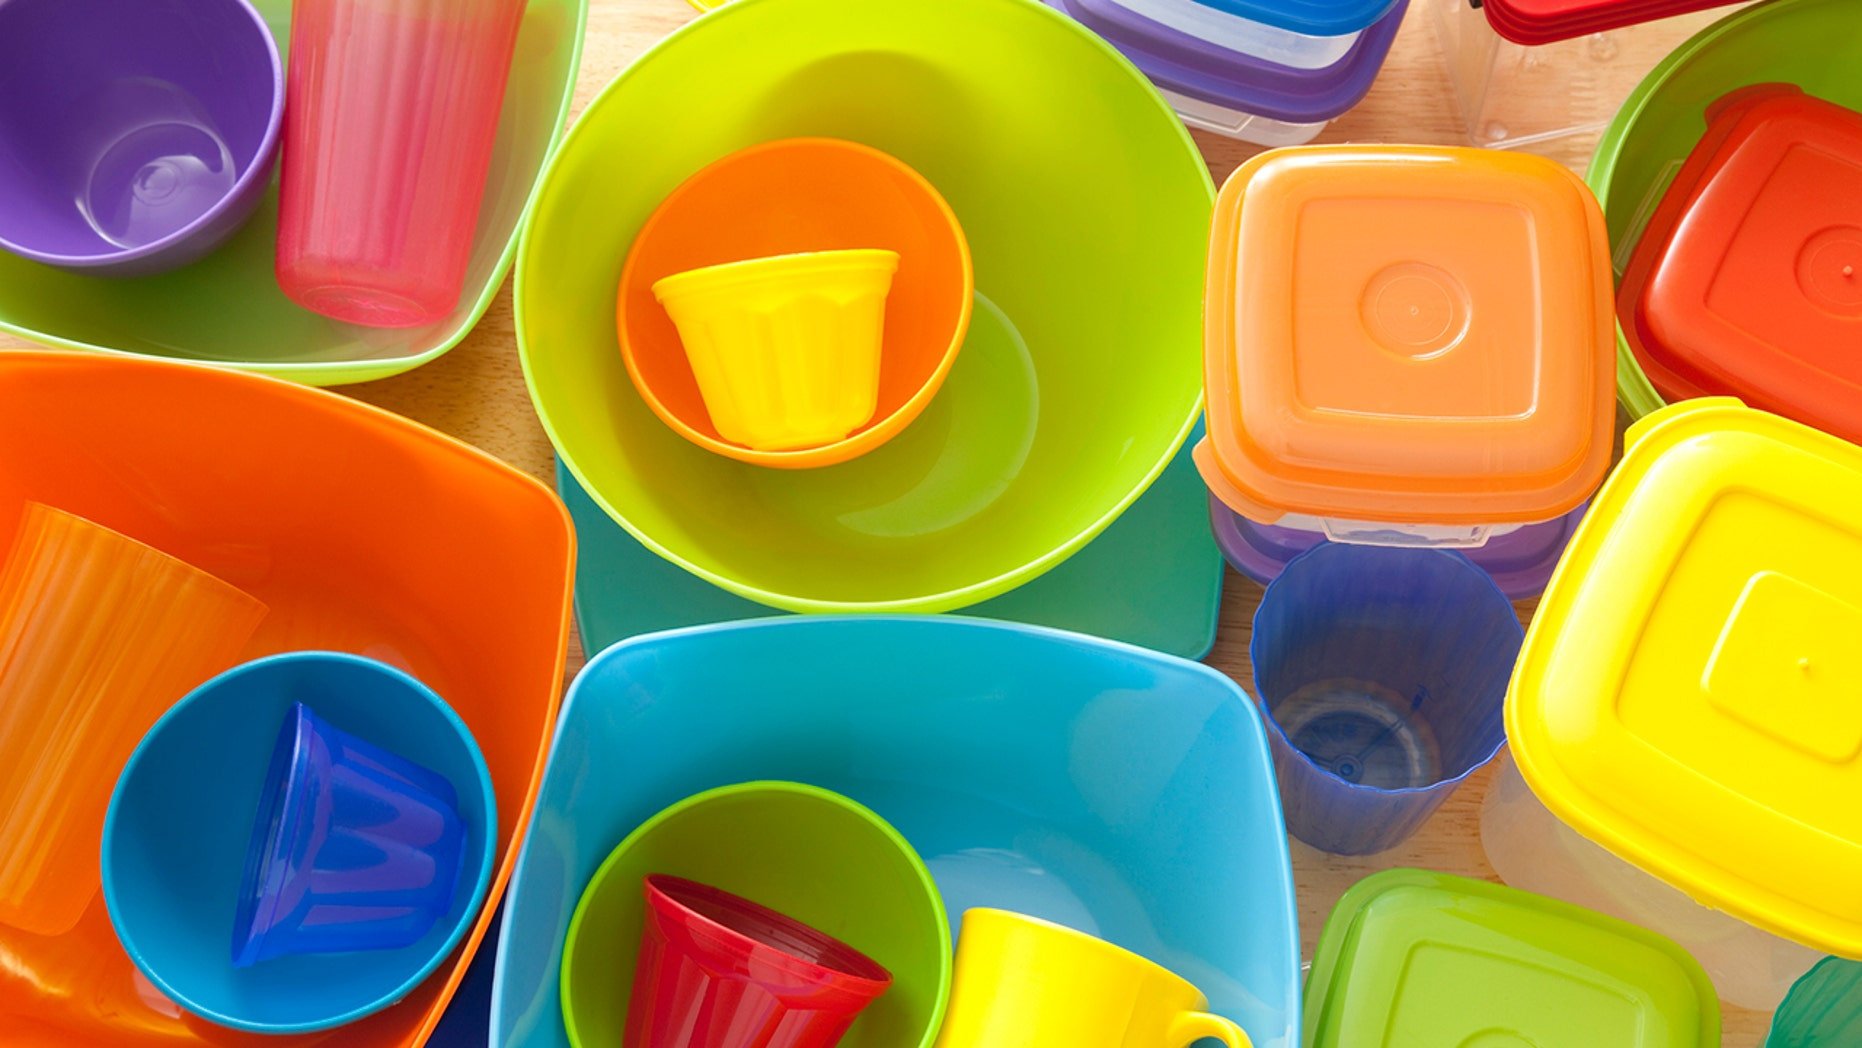 Using plastic containers to store food, as well as microwaving food in plastic containers, can pose health risks for children, the report says.